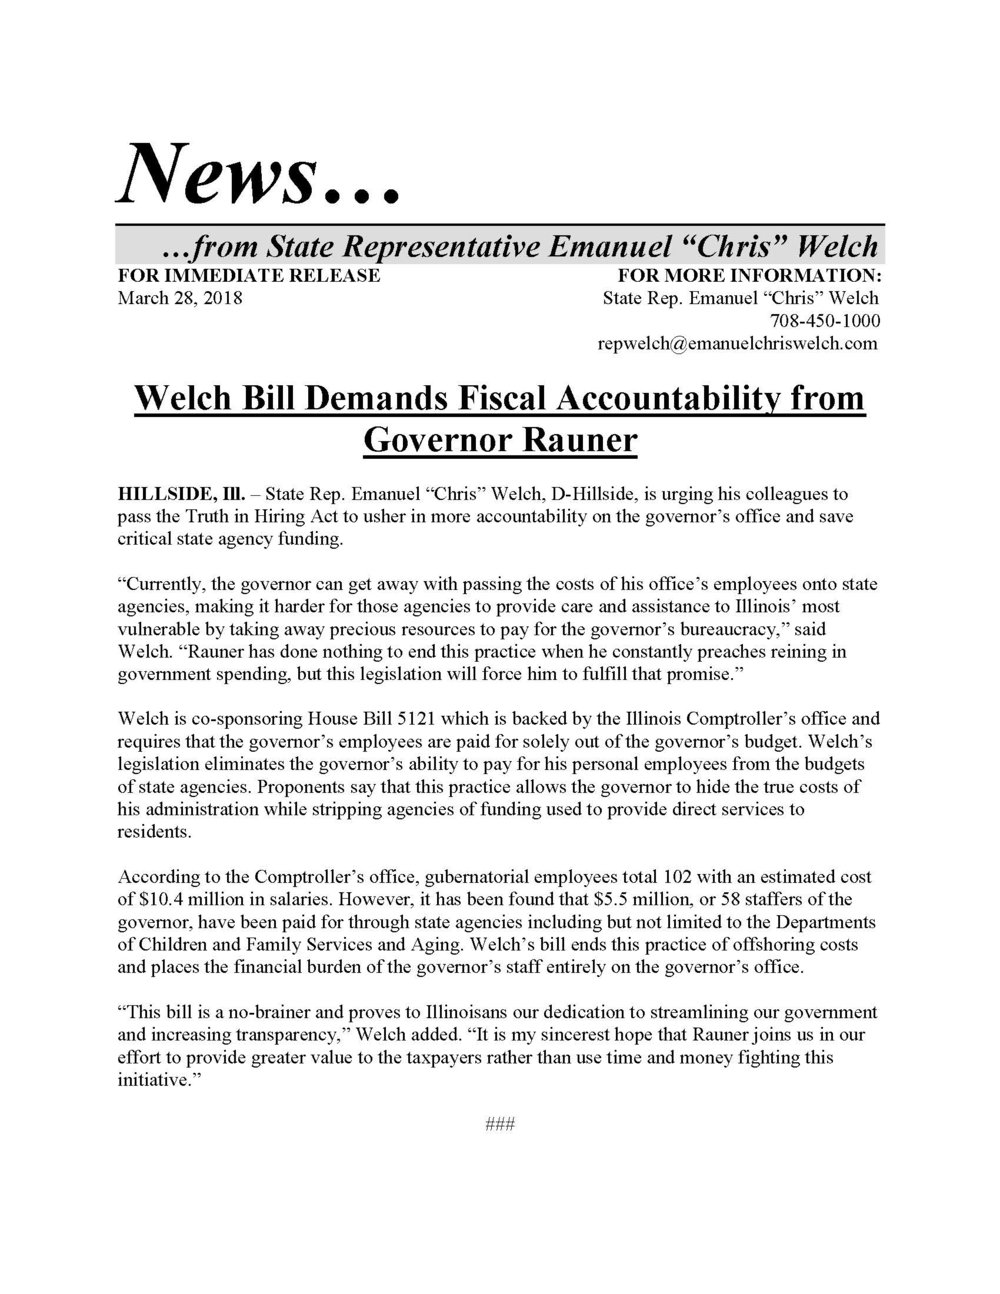 Welch Bill Demands Fiscal Accountability  (March 28, 2018)